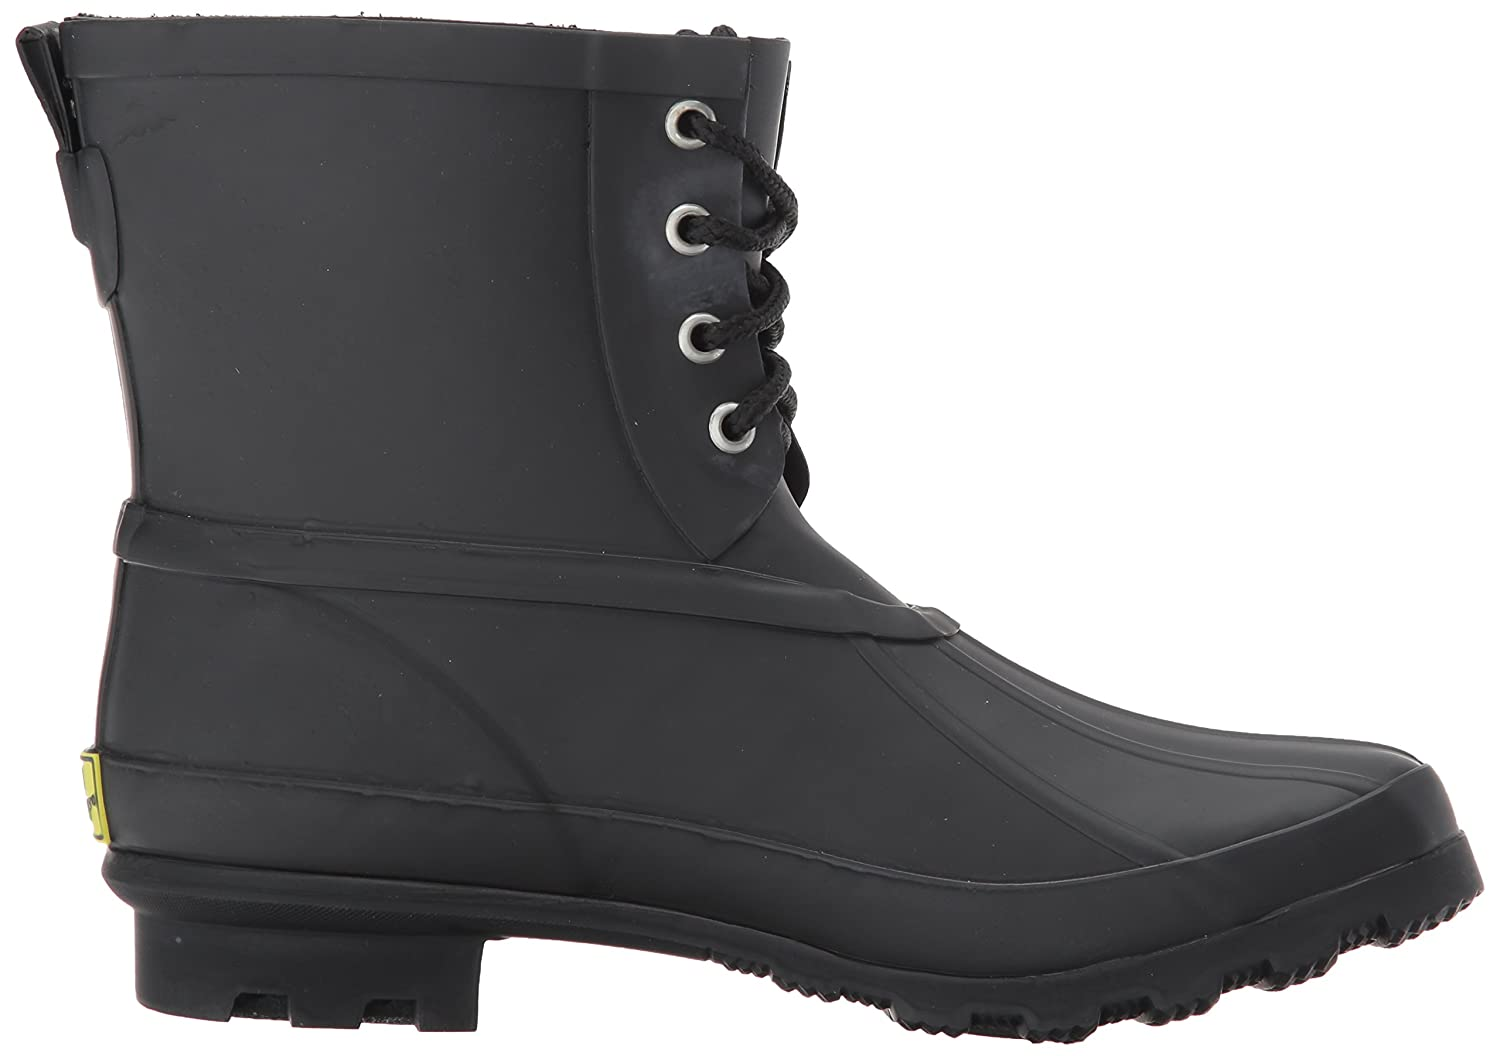 Western 10 Chief Women's Ankle Rain Bootie Boot B01MZAEBSM 10 Western B(M) US|Rain Duck Black 2df2dd